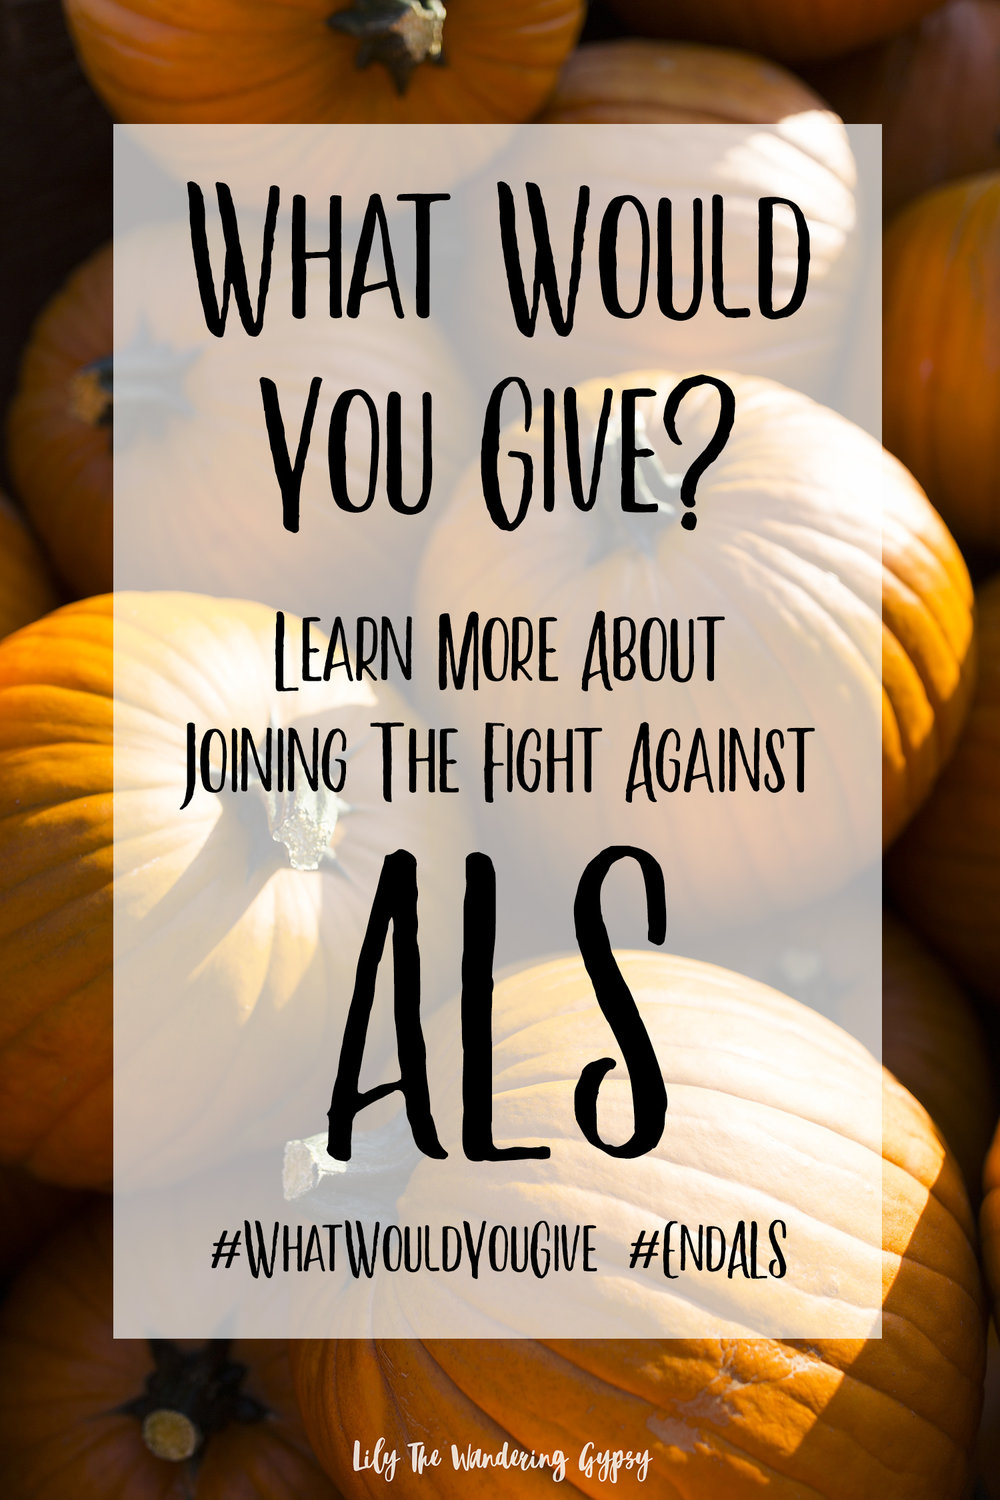 Pin this image to spread the word about joining the fight to cure ALS.